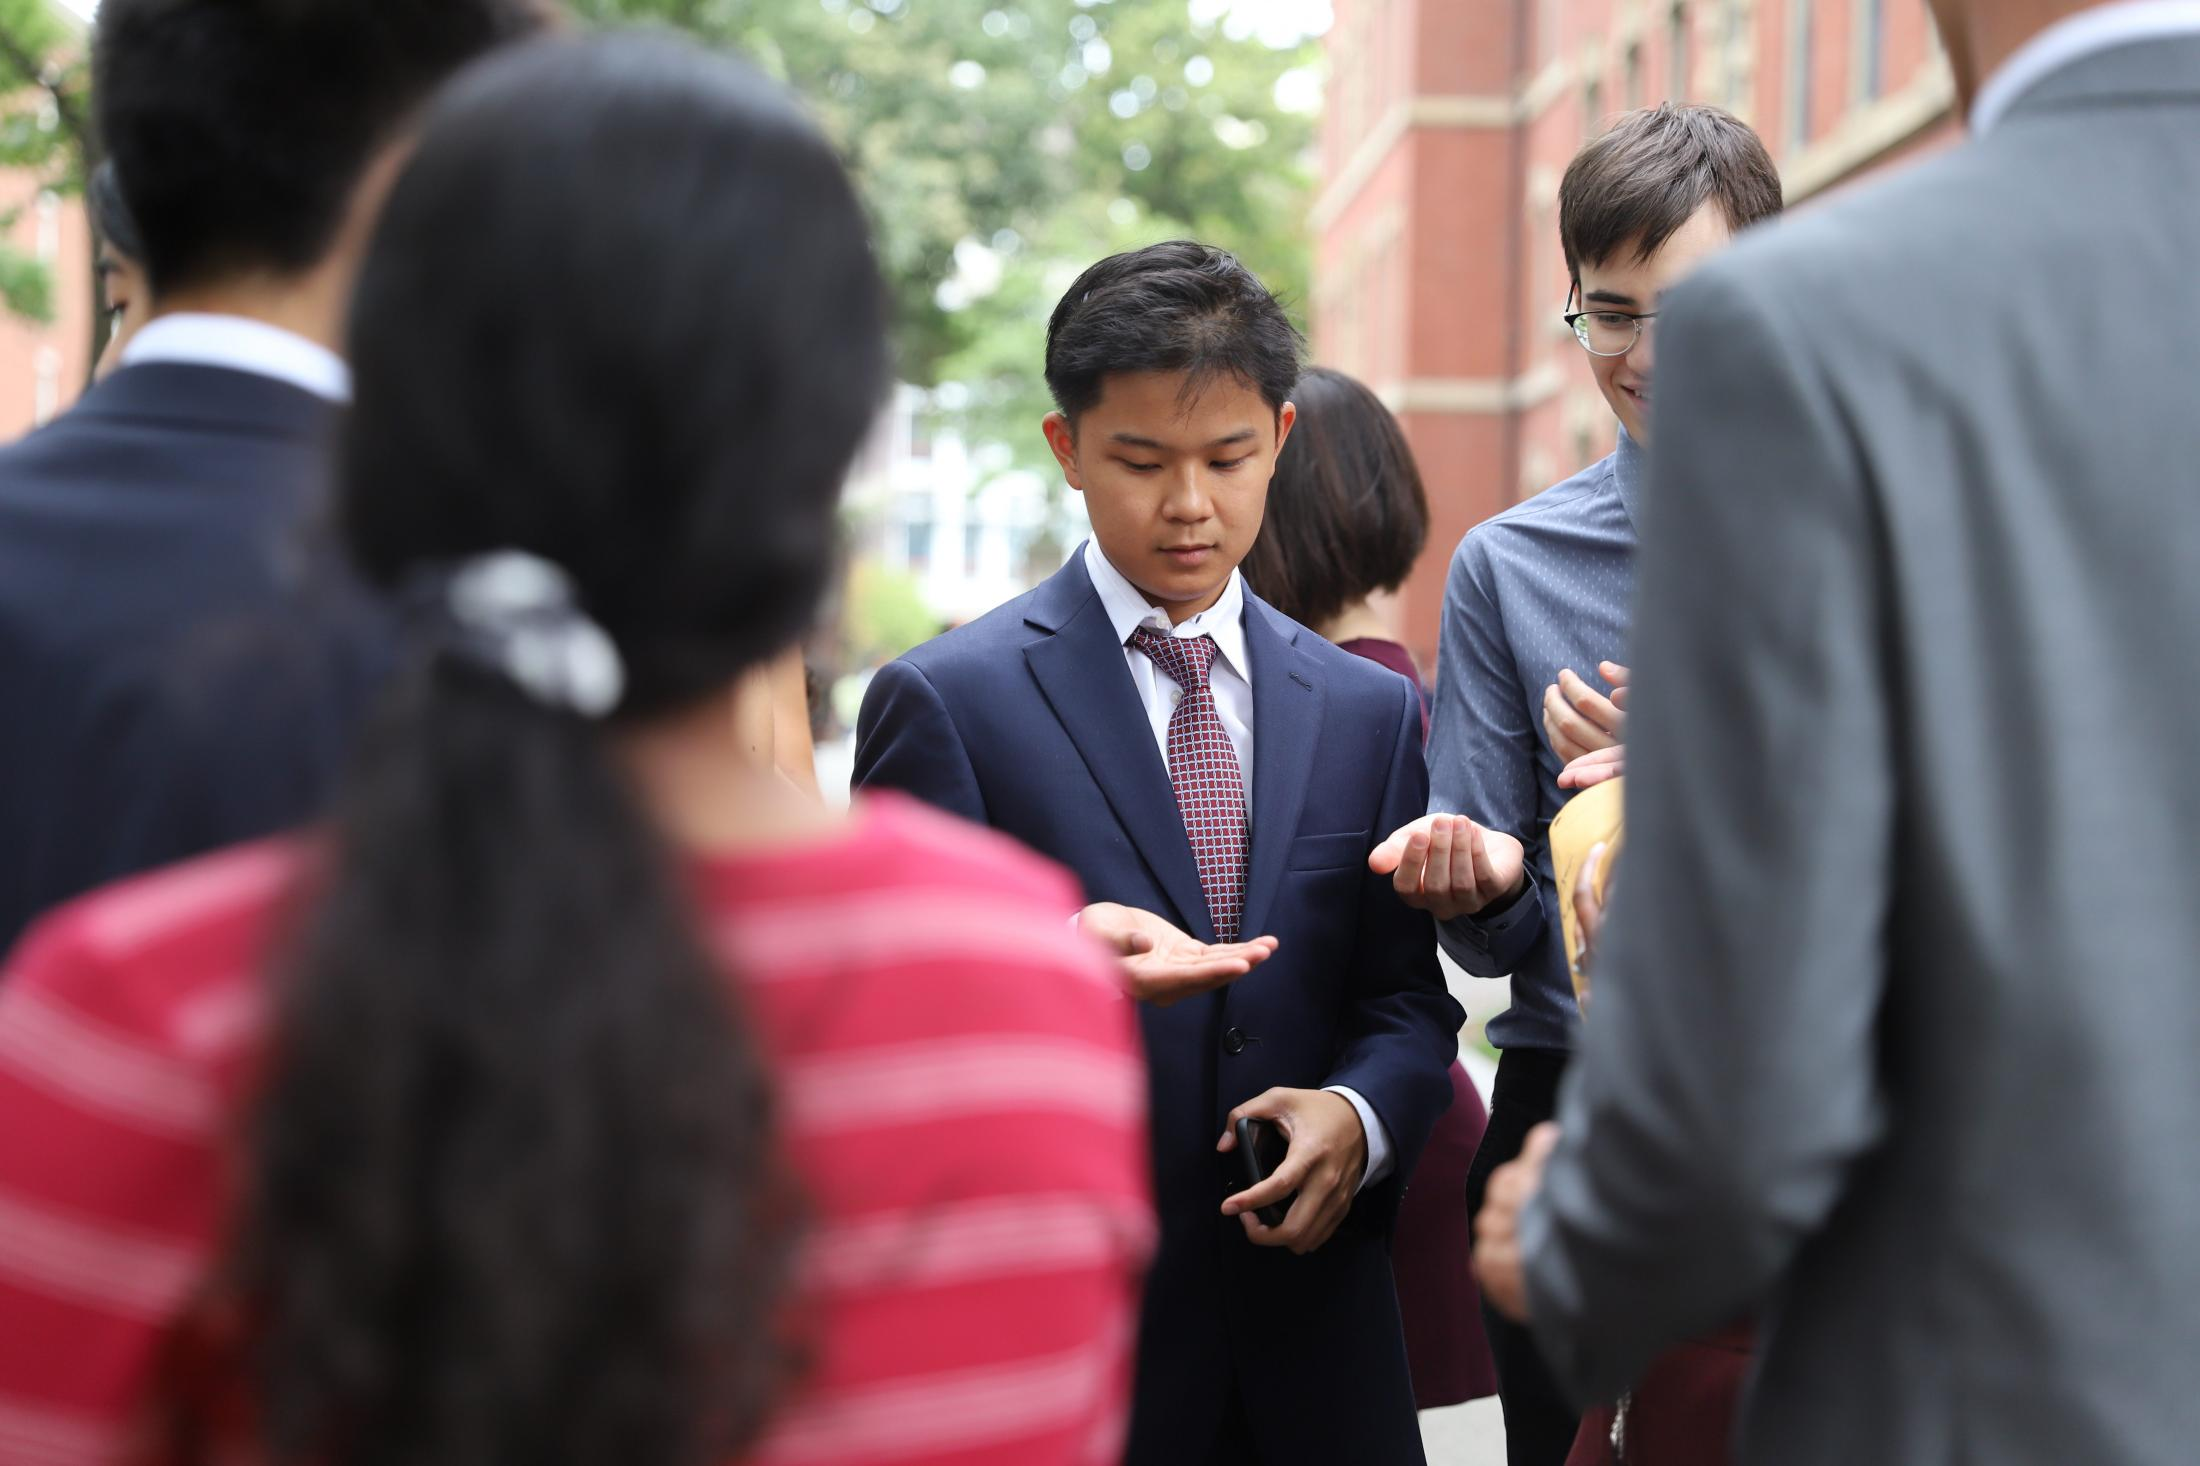 A freshman receives his class pin before Convocation in August 2019.